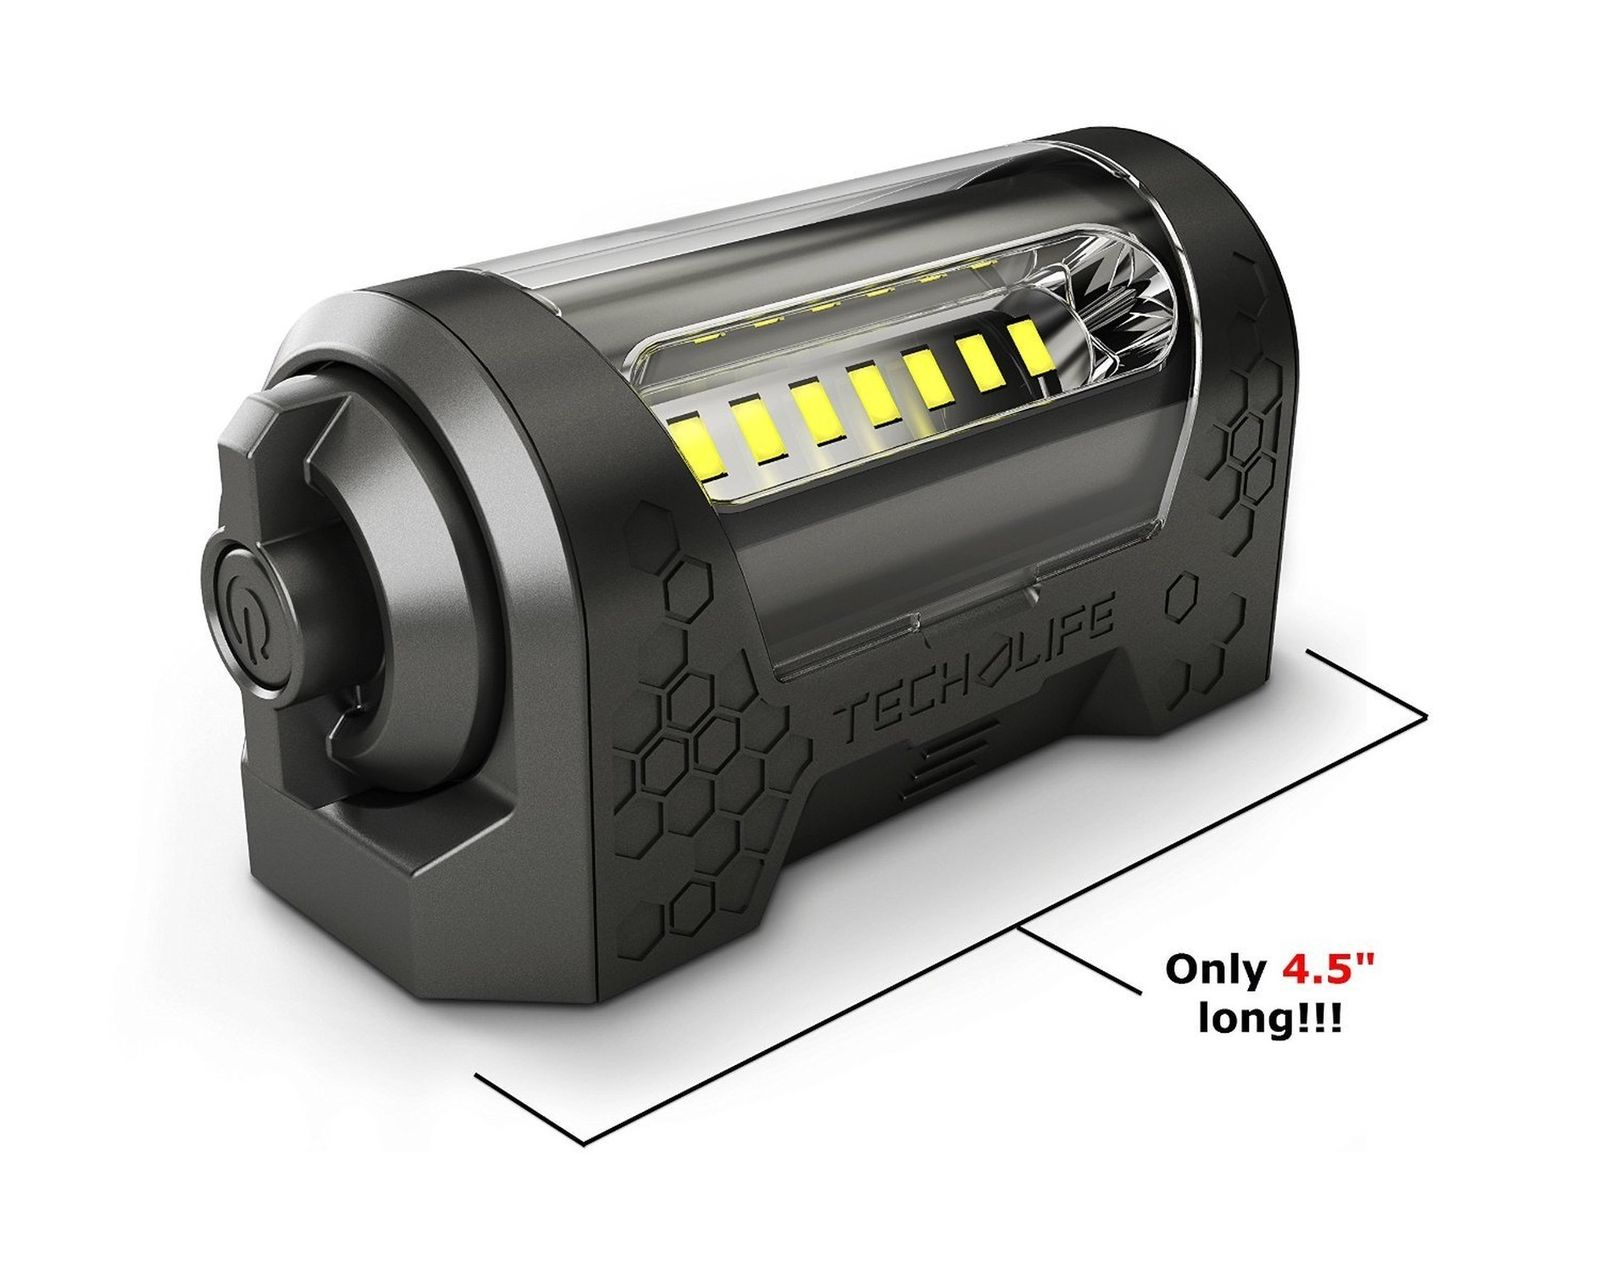 Tech Light Magnetic Waterproof Rechargeable Led Light